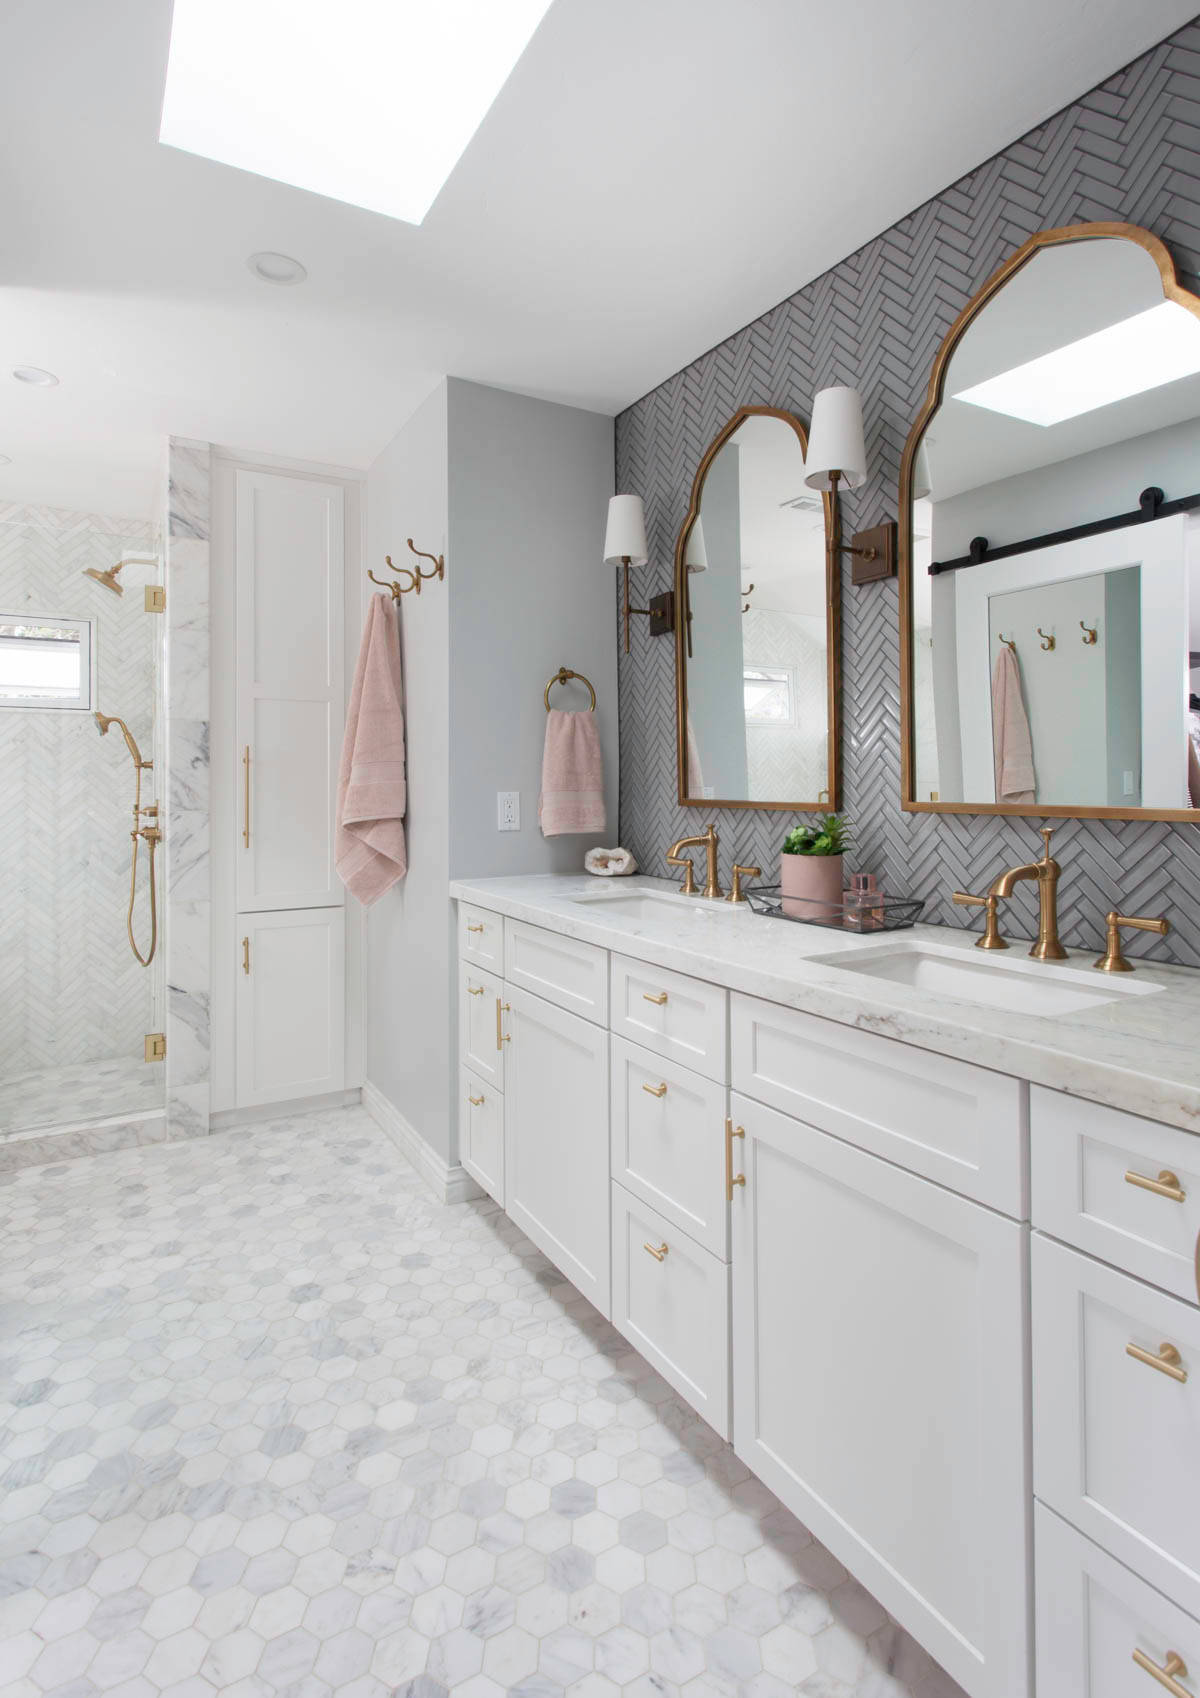 75 Beautiful Bathroom With White Cabinets Pictures Ideas February 2021 Houzz